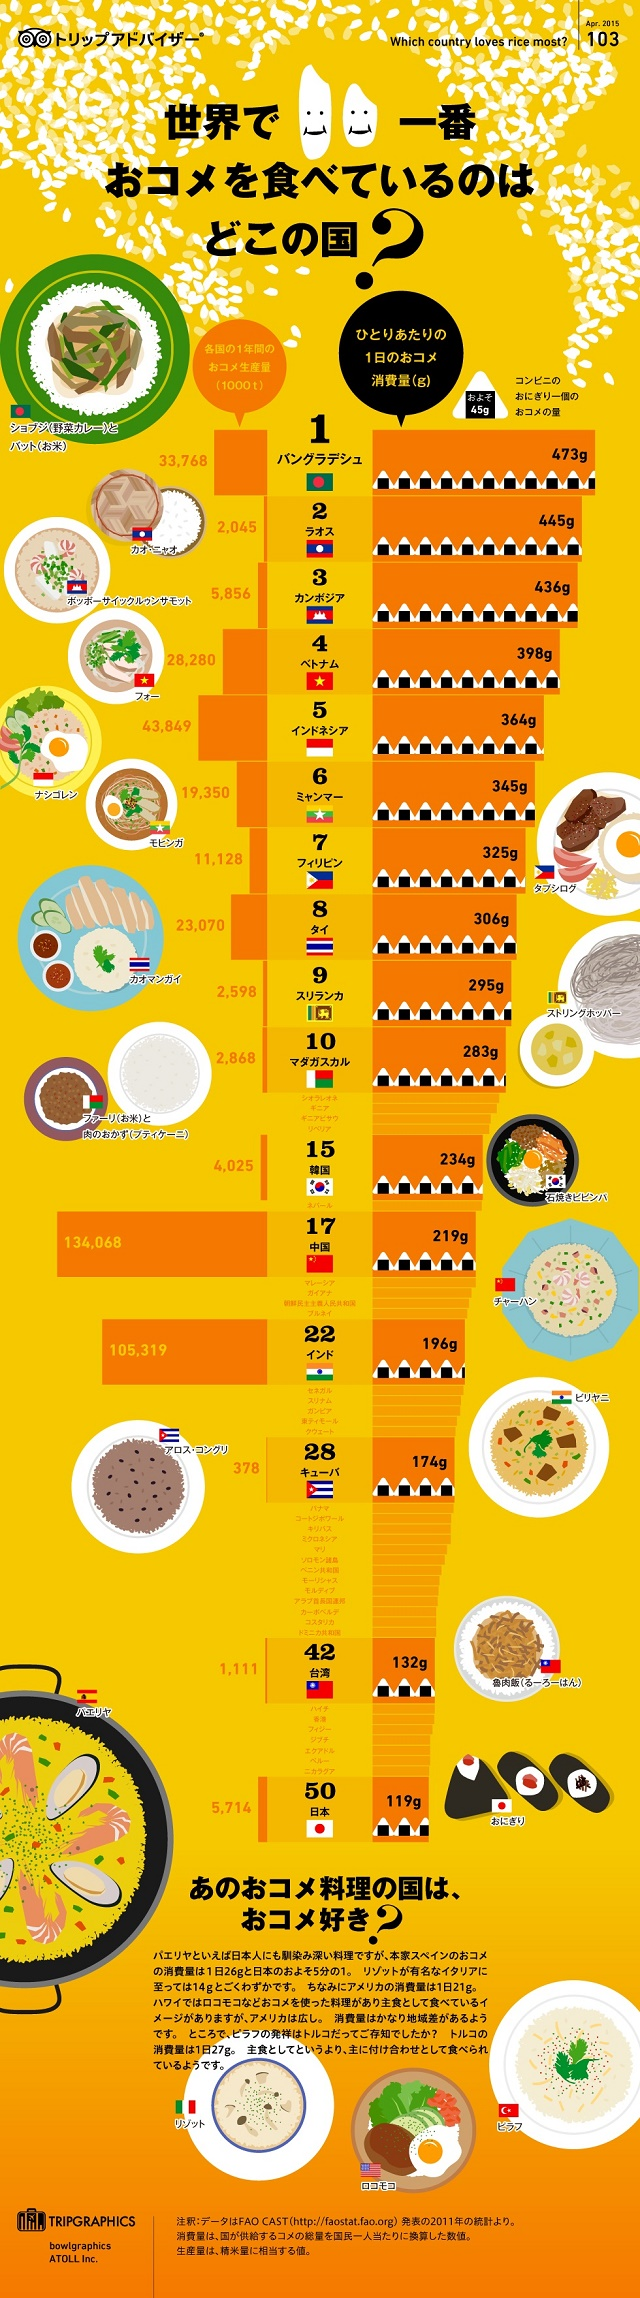 http://www.roomie.jp/wp-content/uploads/2015/04/150413ECriceinfographic2.jpg